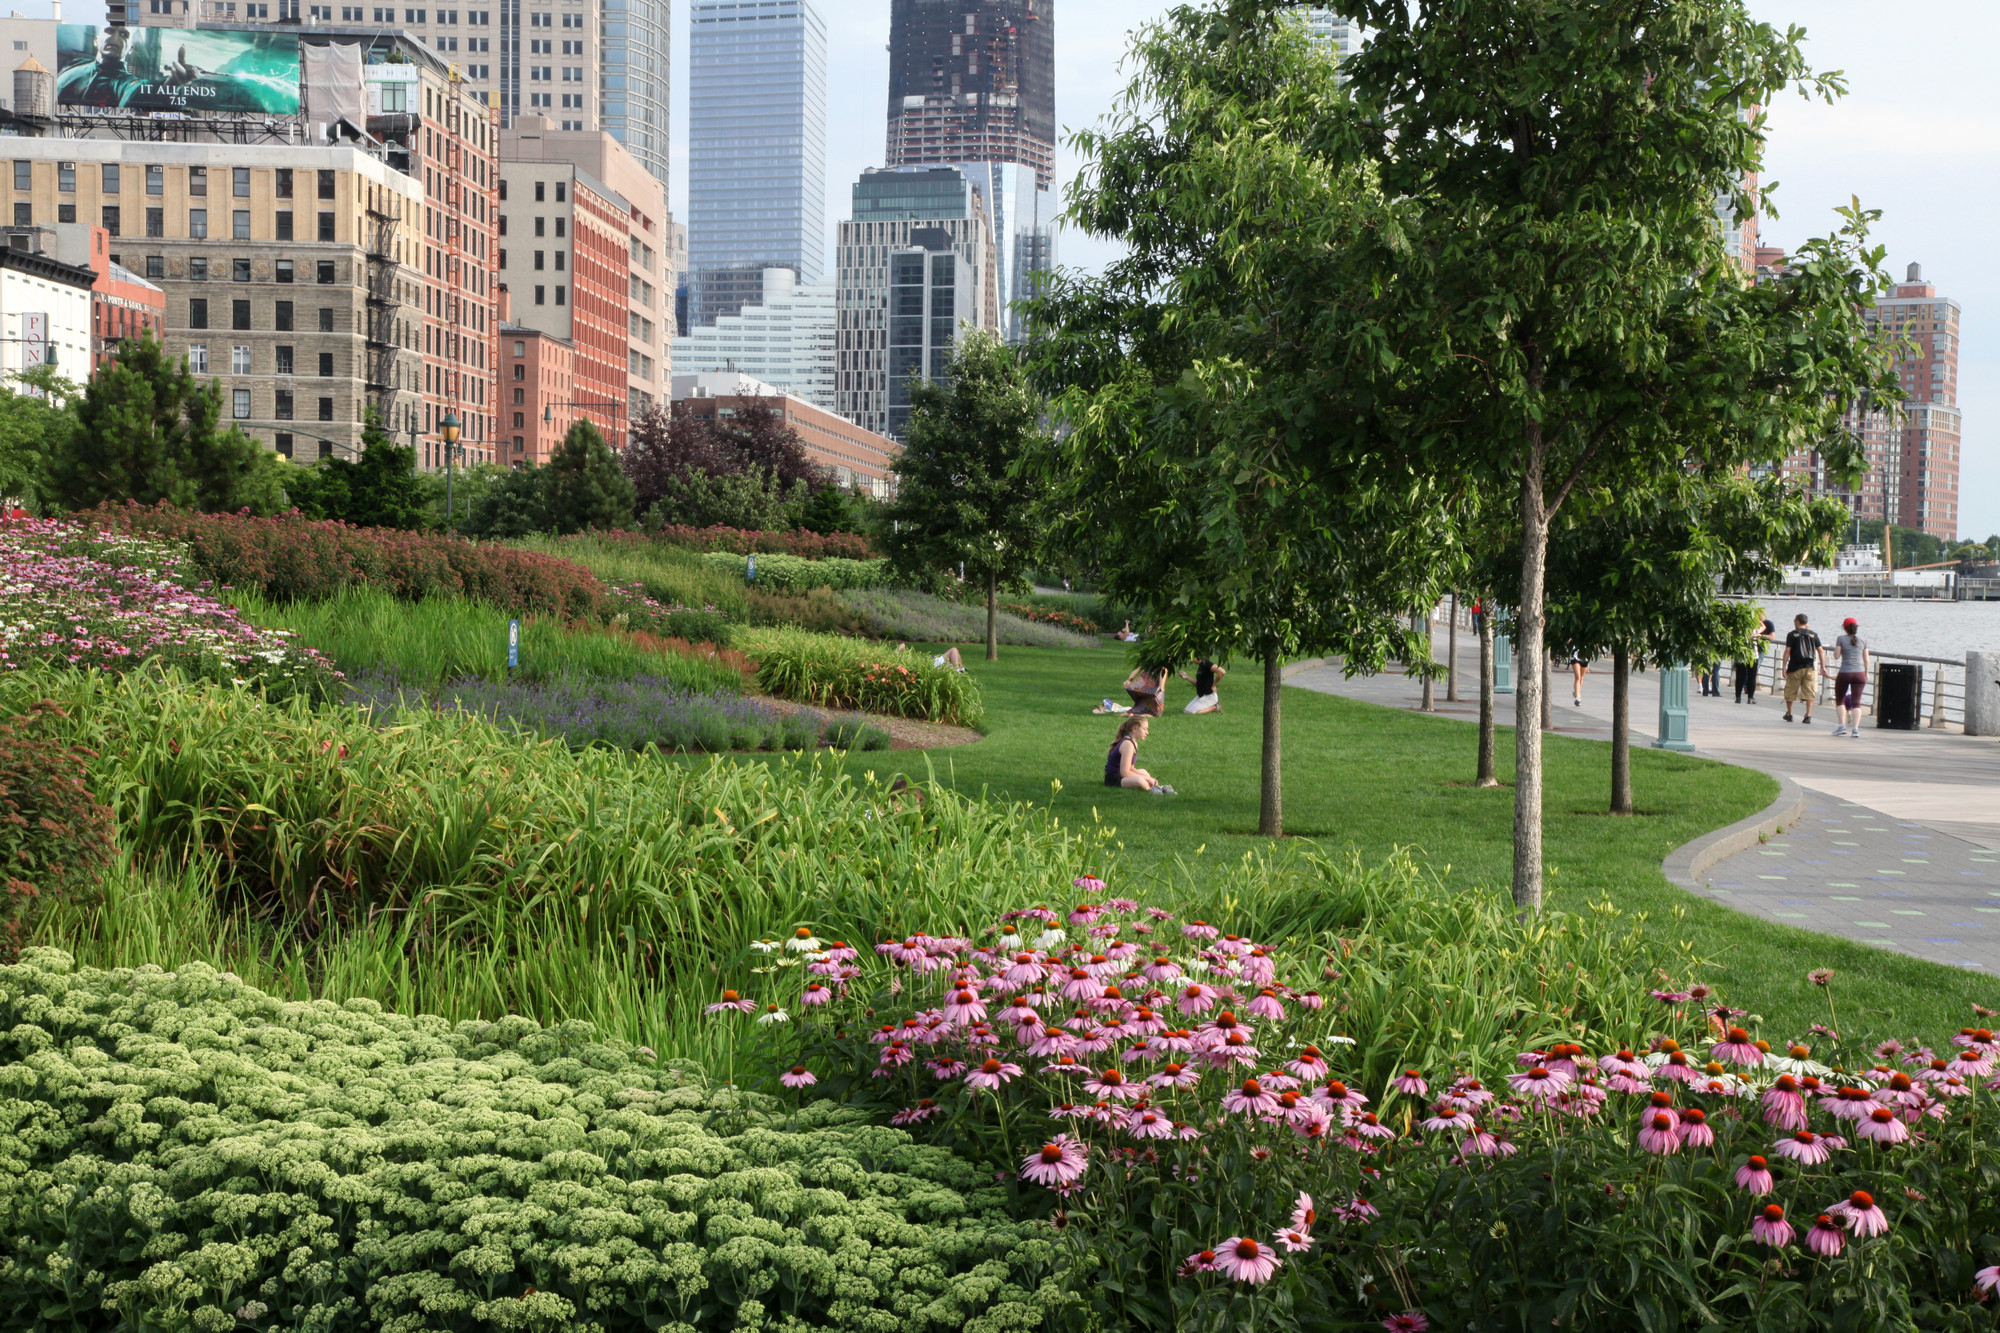 Landscape Design In Our Time of Climate Change, Hudson River Park, Tribeca Section. Image Courtesy of Mathews Nielsen Landscape Architects